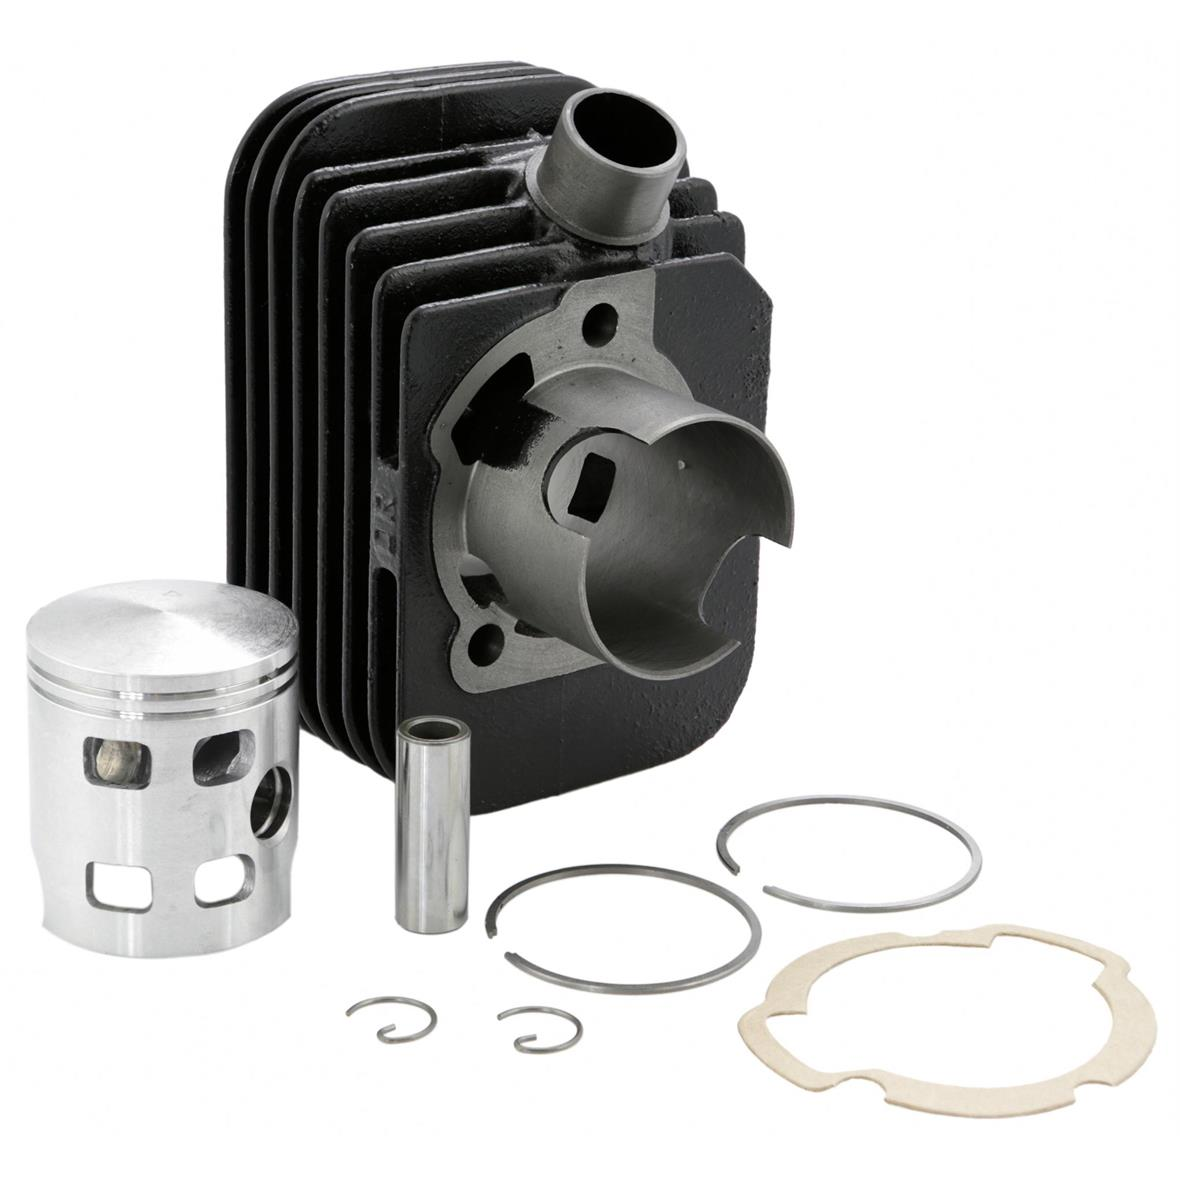 Product Image for 'Racing Cylinder Kit D.R. 63 ccTitle'